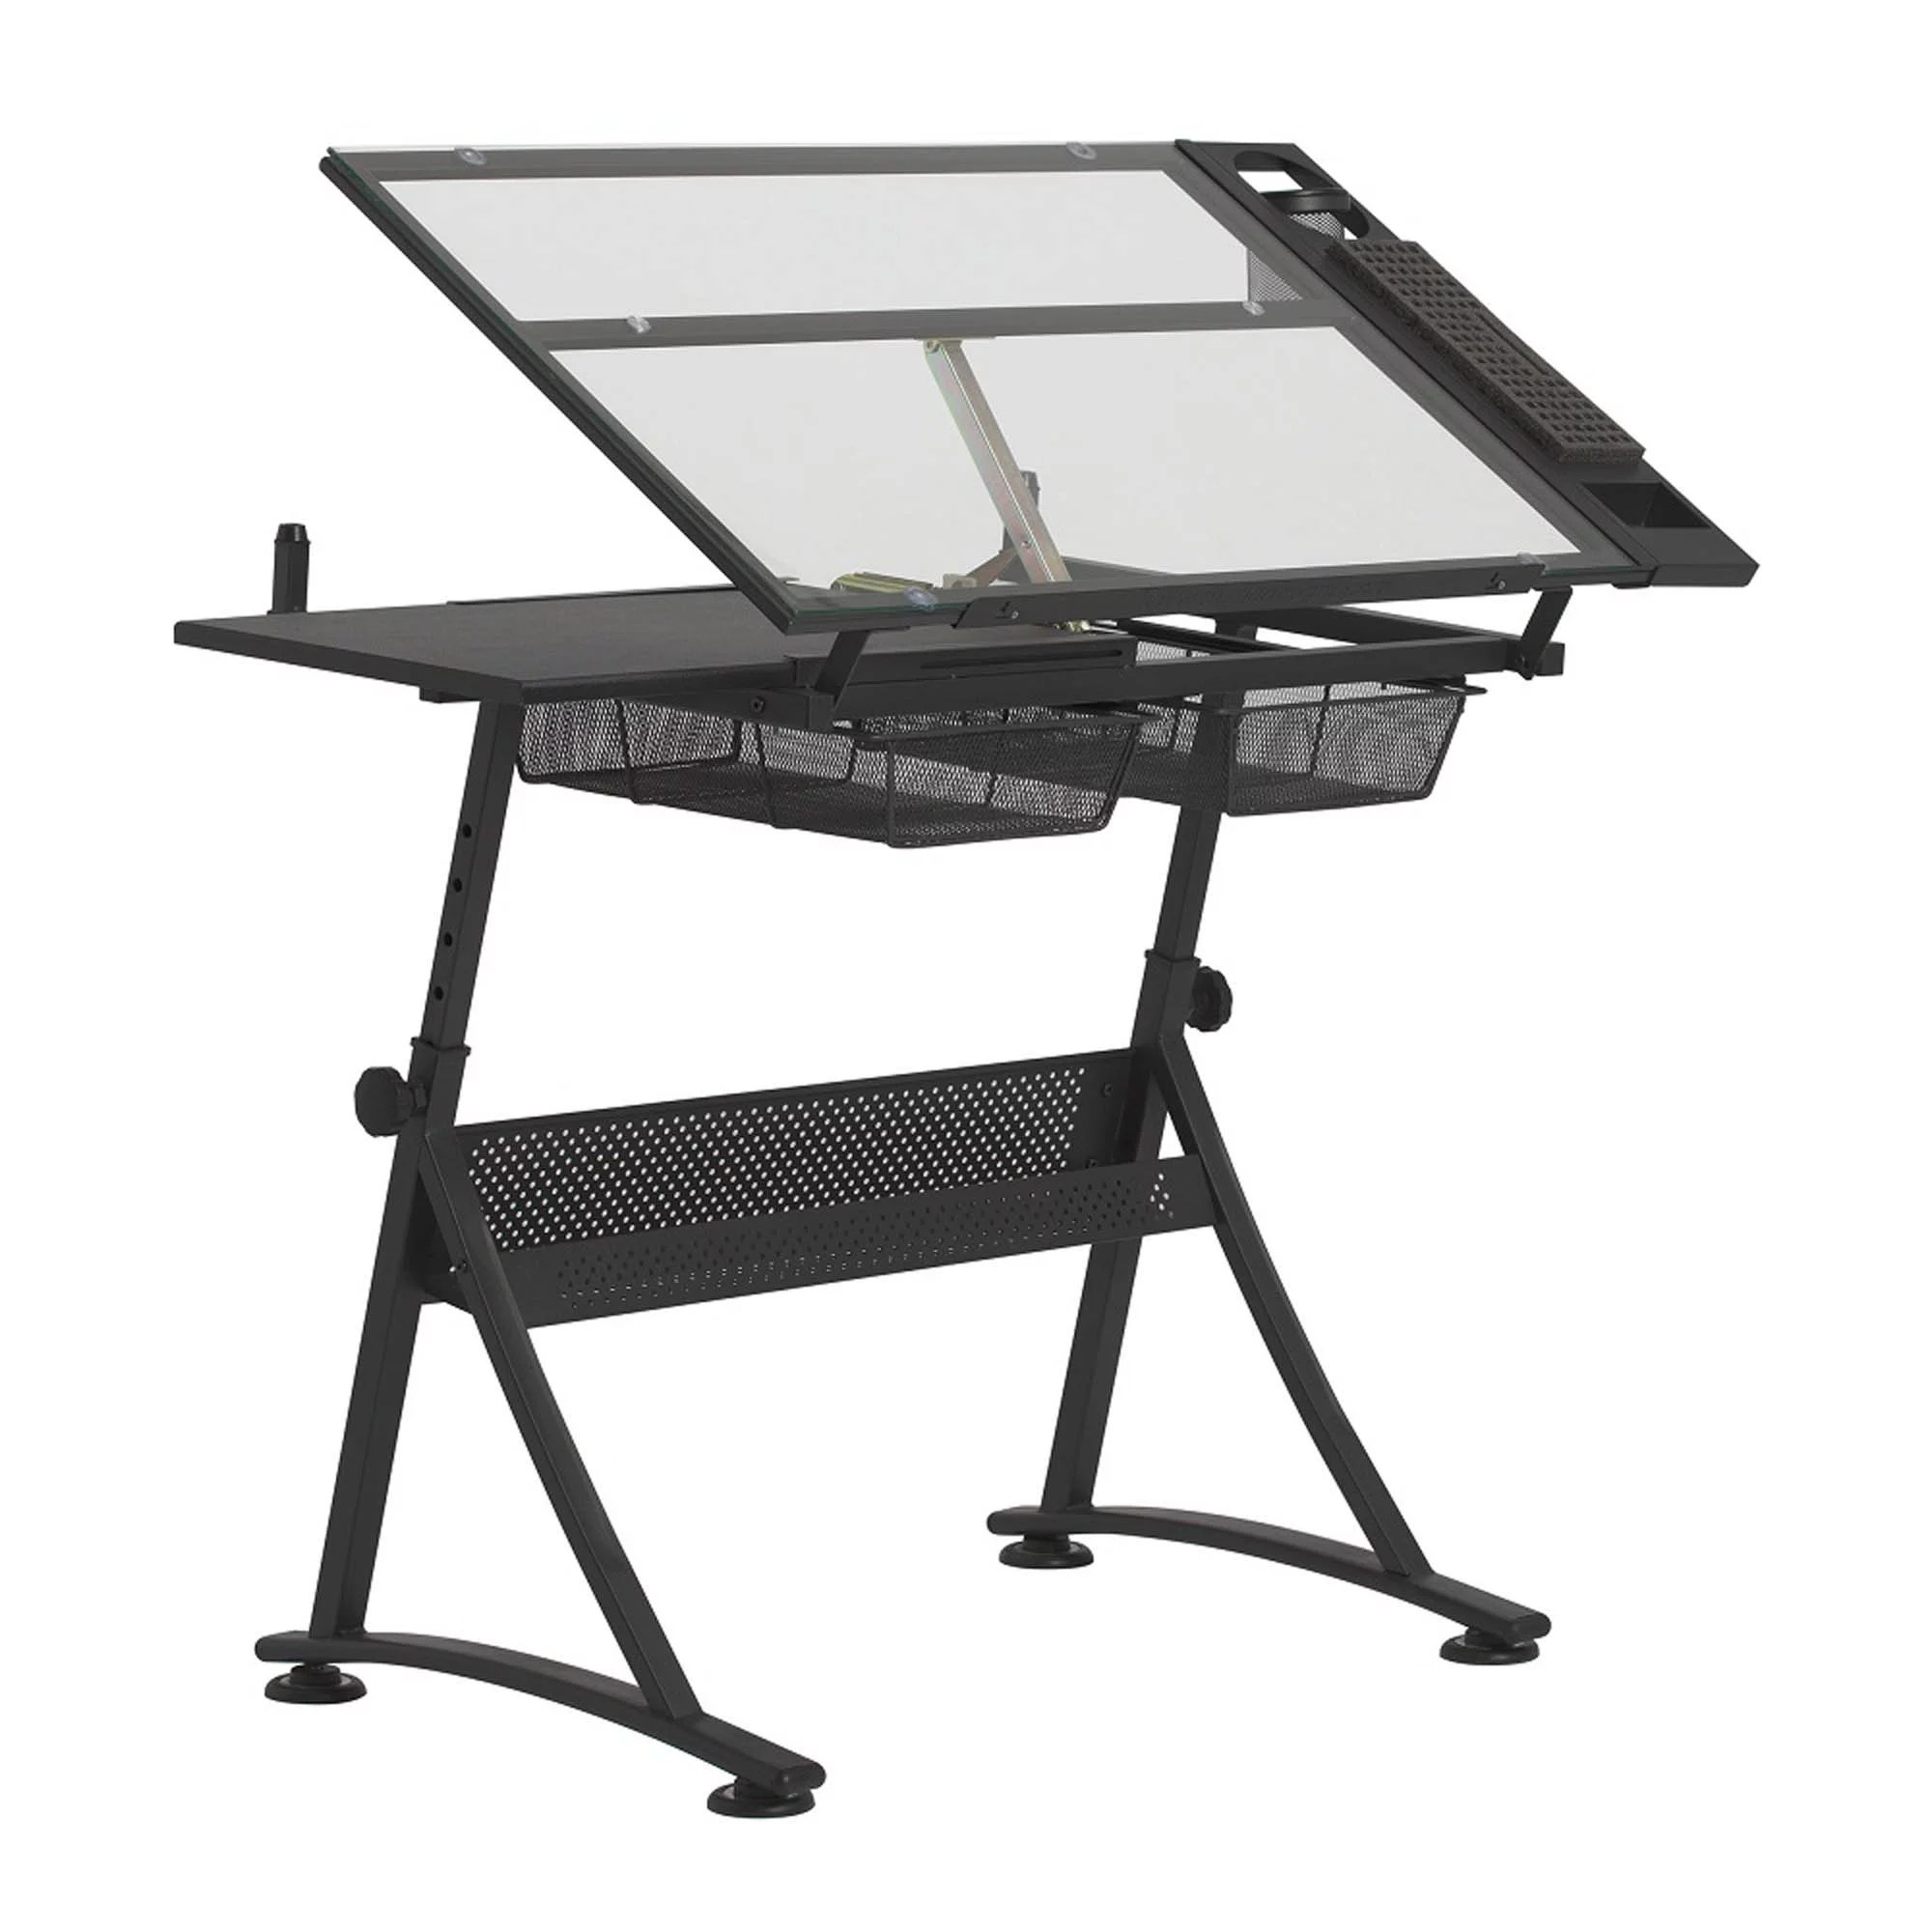 sd studio designs hobby lobby exclusive fusion craft center table stool and 24 storage tray in charcoal black clear glass